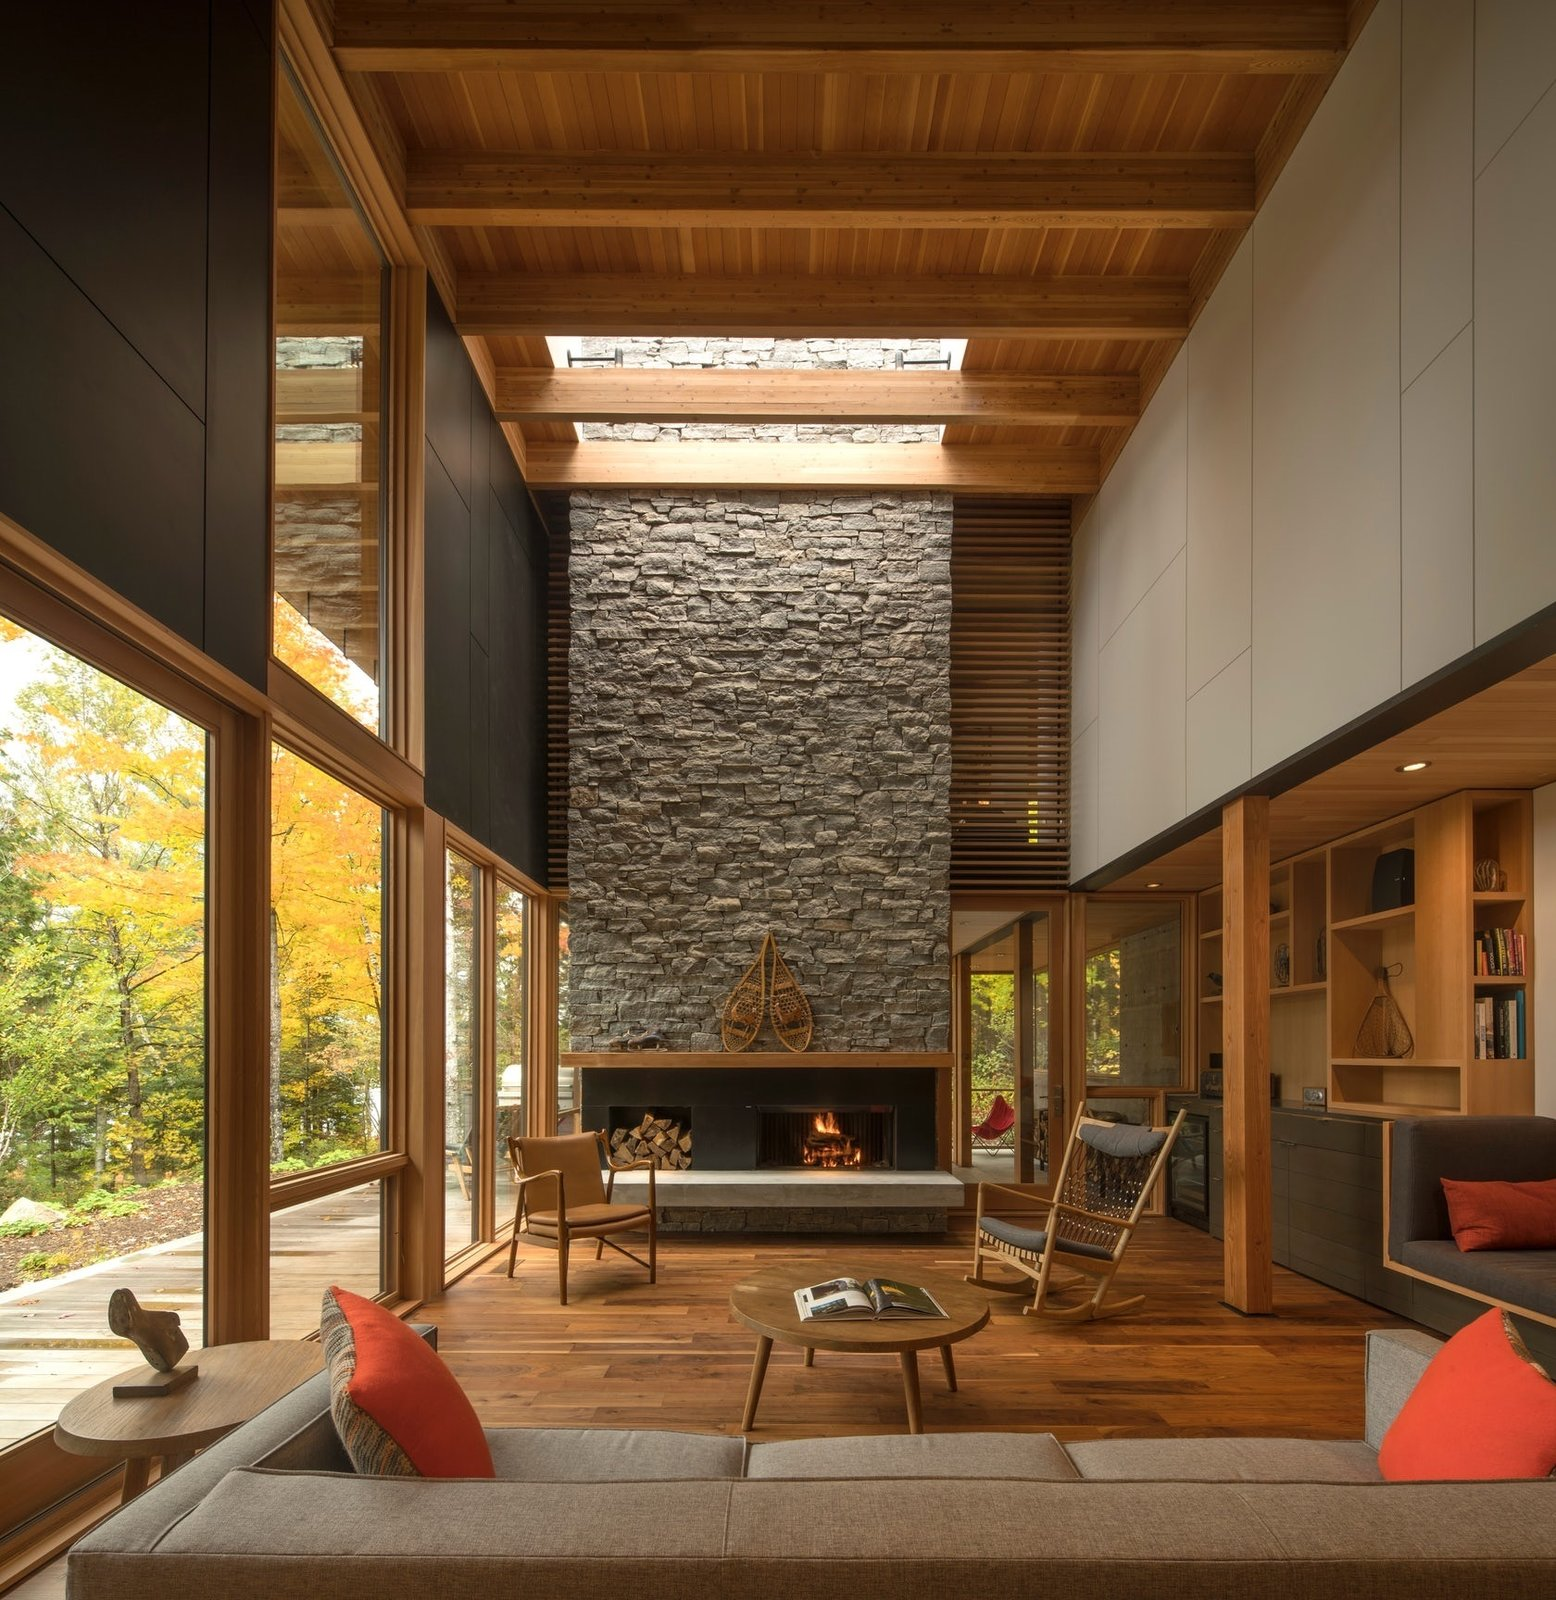 Living Room, Concrete Floor, Medium Hardwood Floor, Storage, Stools, Coffee Tables, Two-Sided Fireplace, Sofa, Wood Burning Fireplace, and Bookcase  The Bear Stand